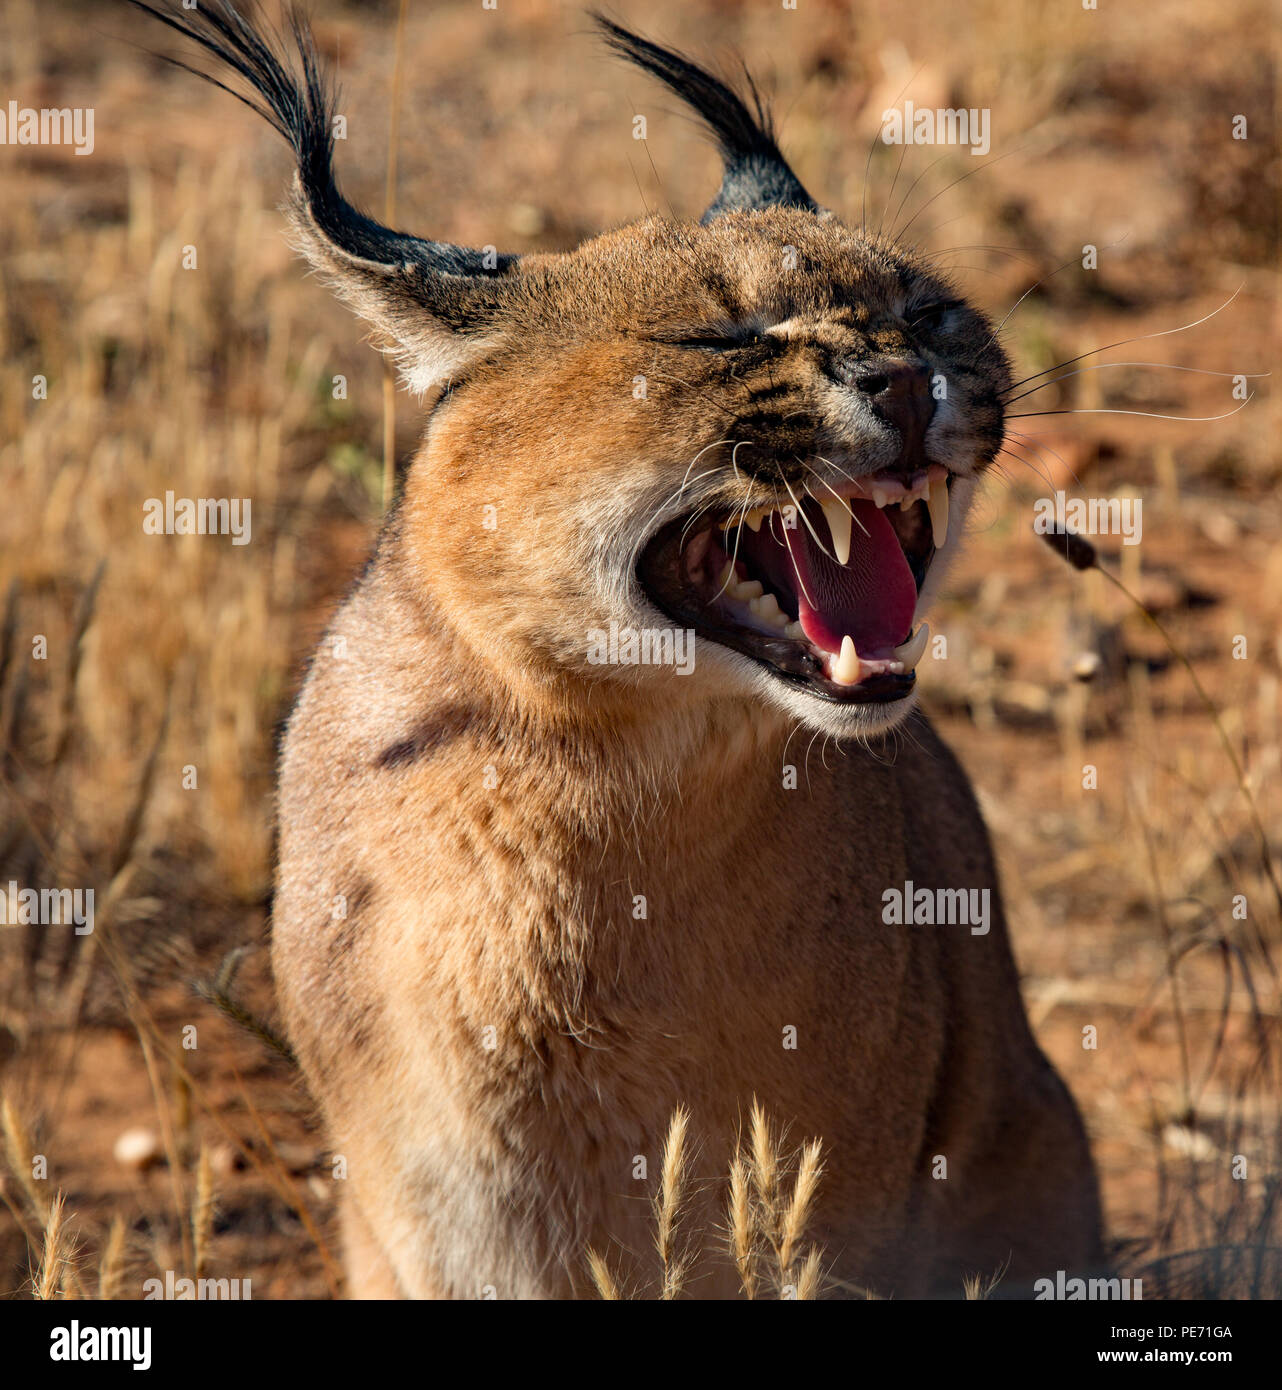 Caracal cat opens his mouth and snarls - Stock Image